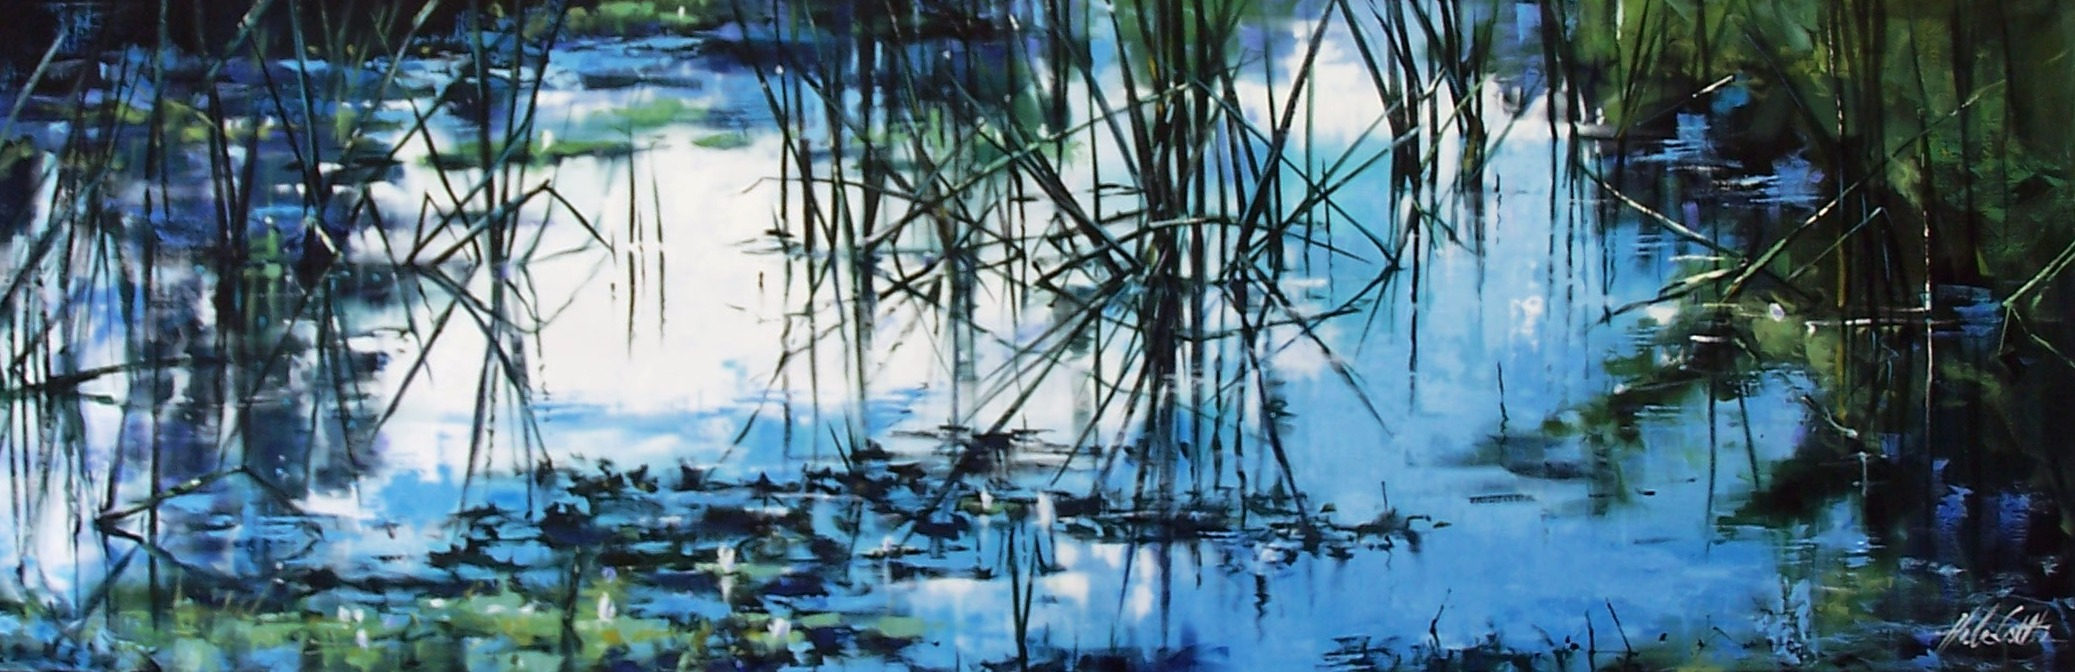 REED REFLECTIONS ACRYLIC 1800X700.JPG